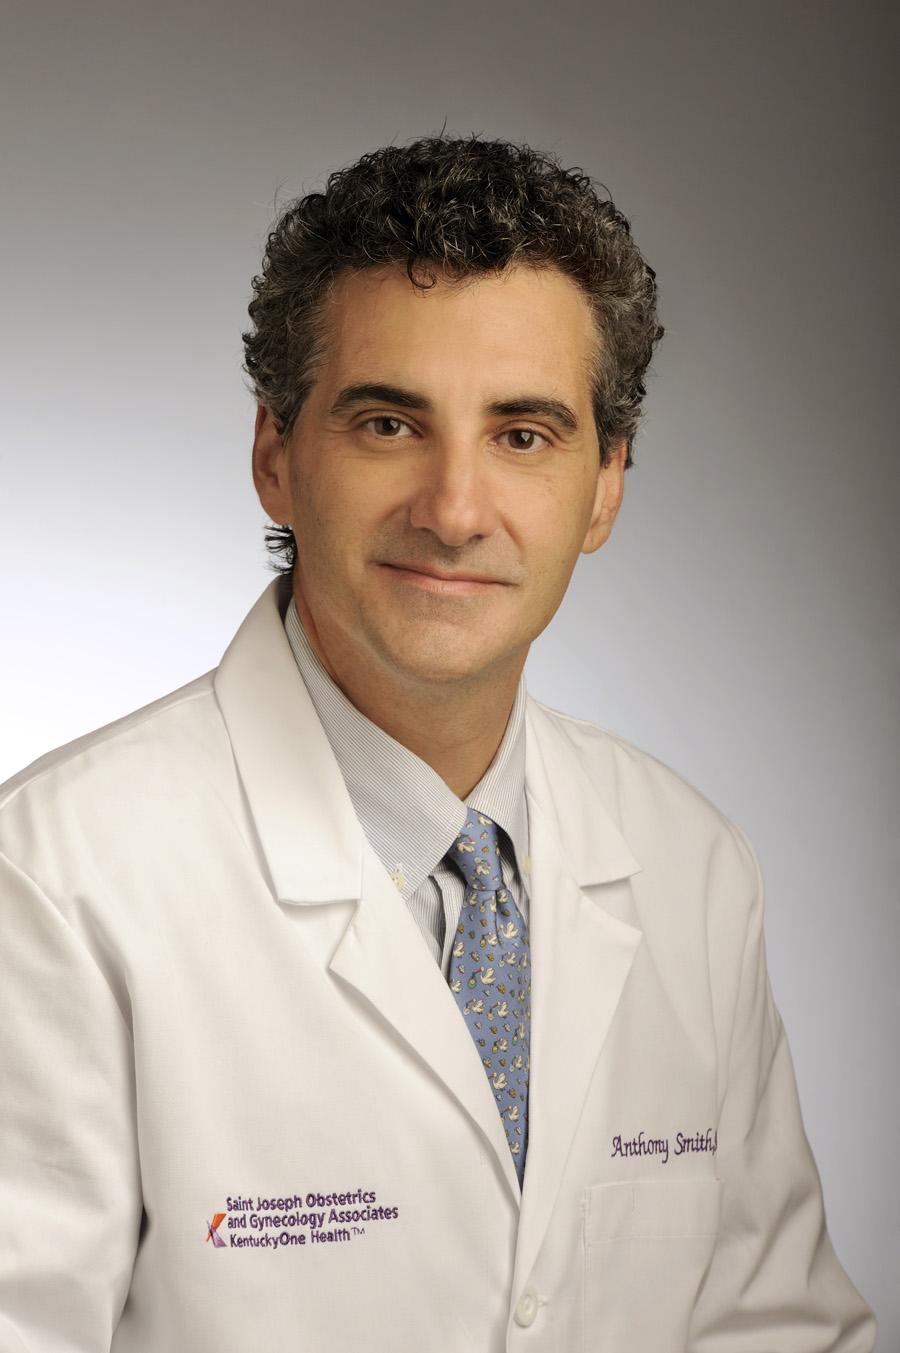 Dr. Anthony Smith, MD